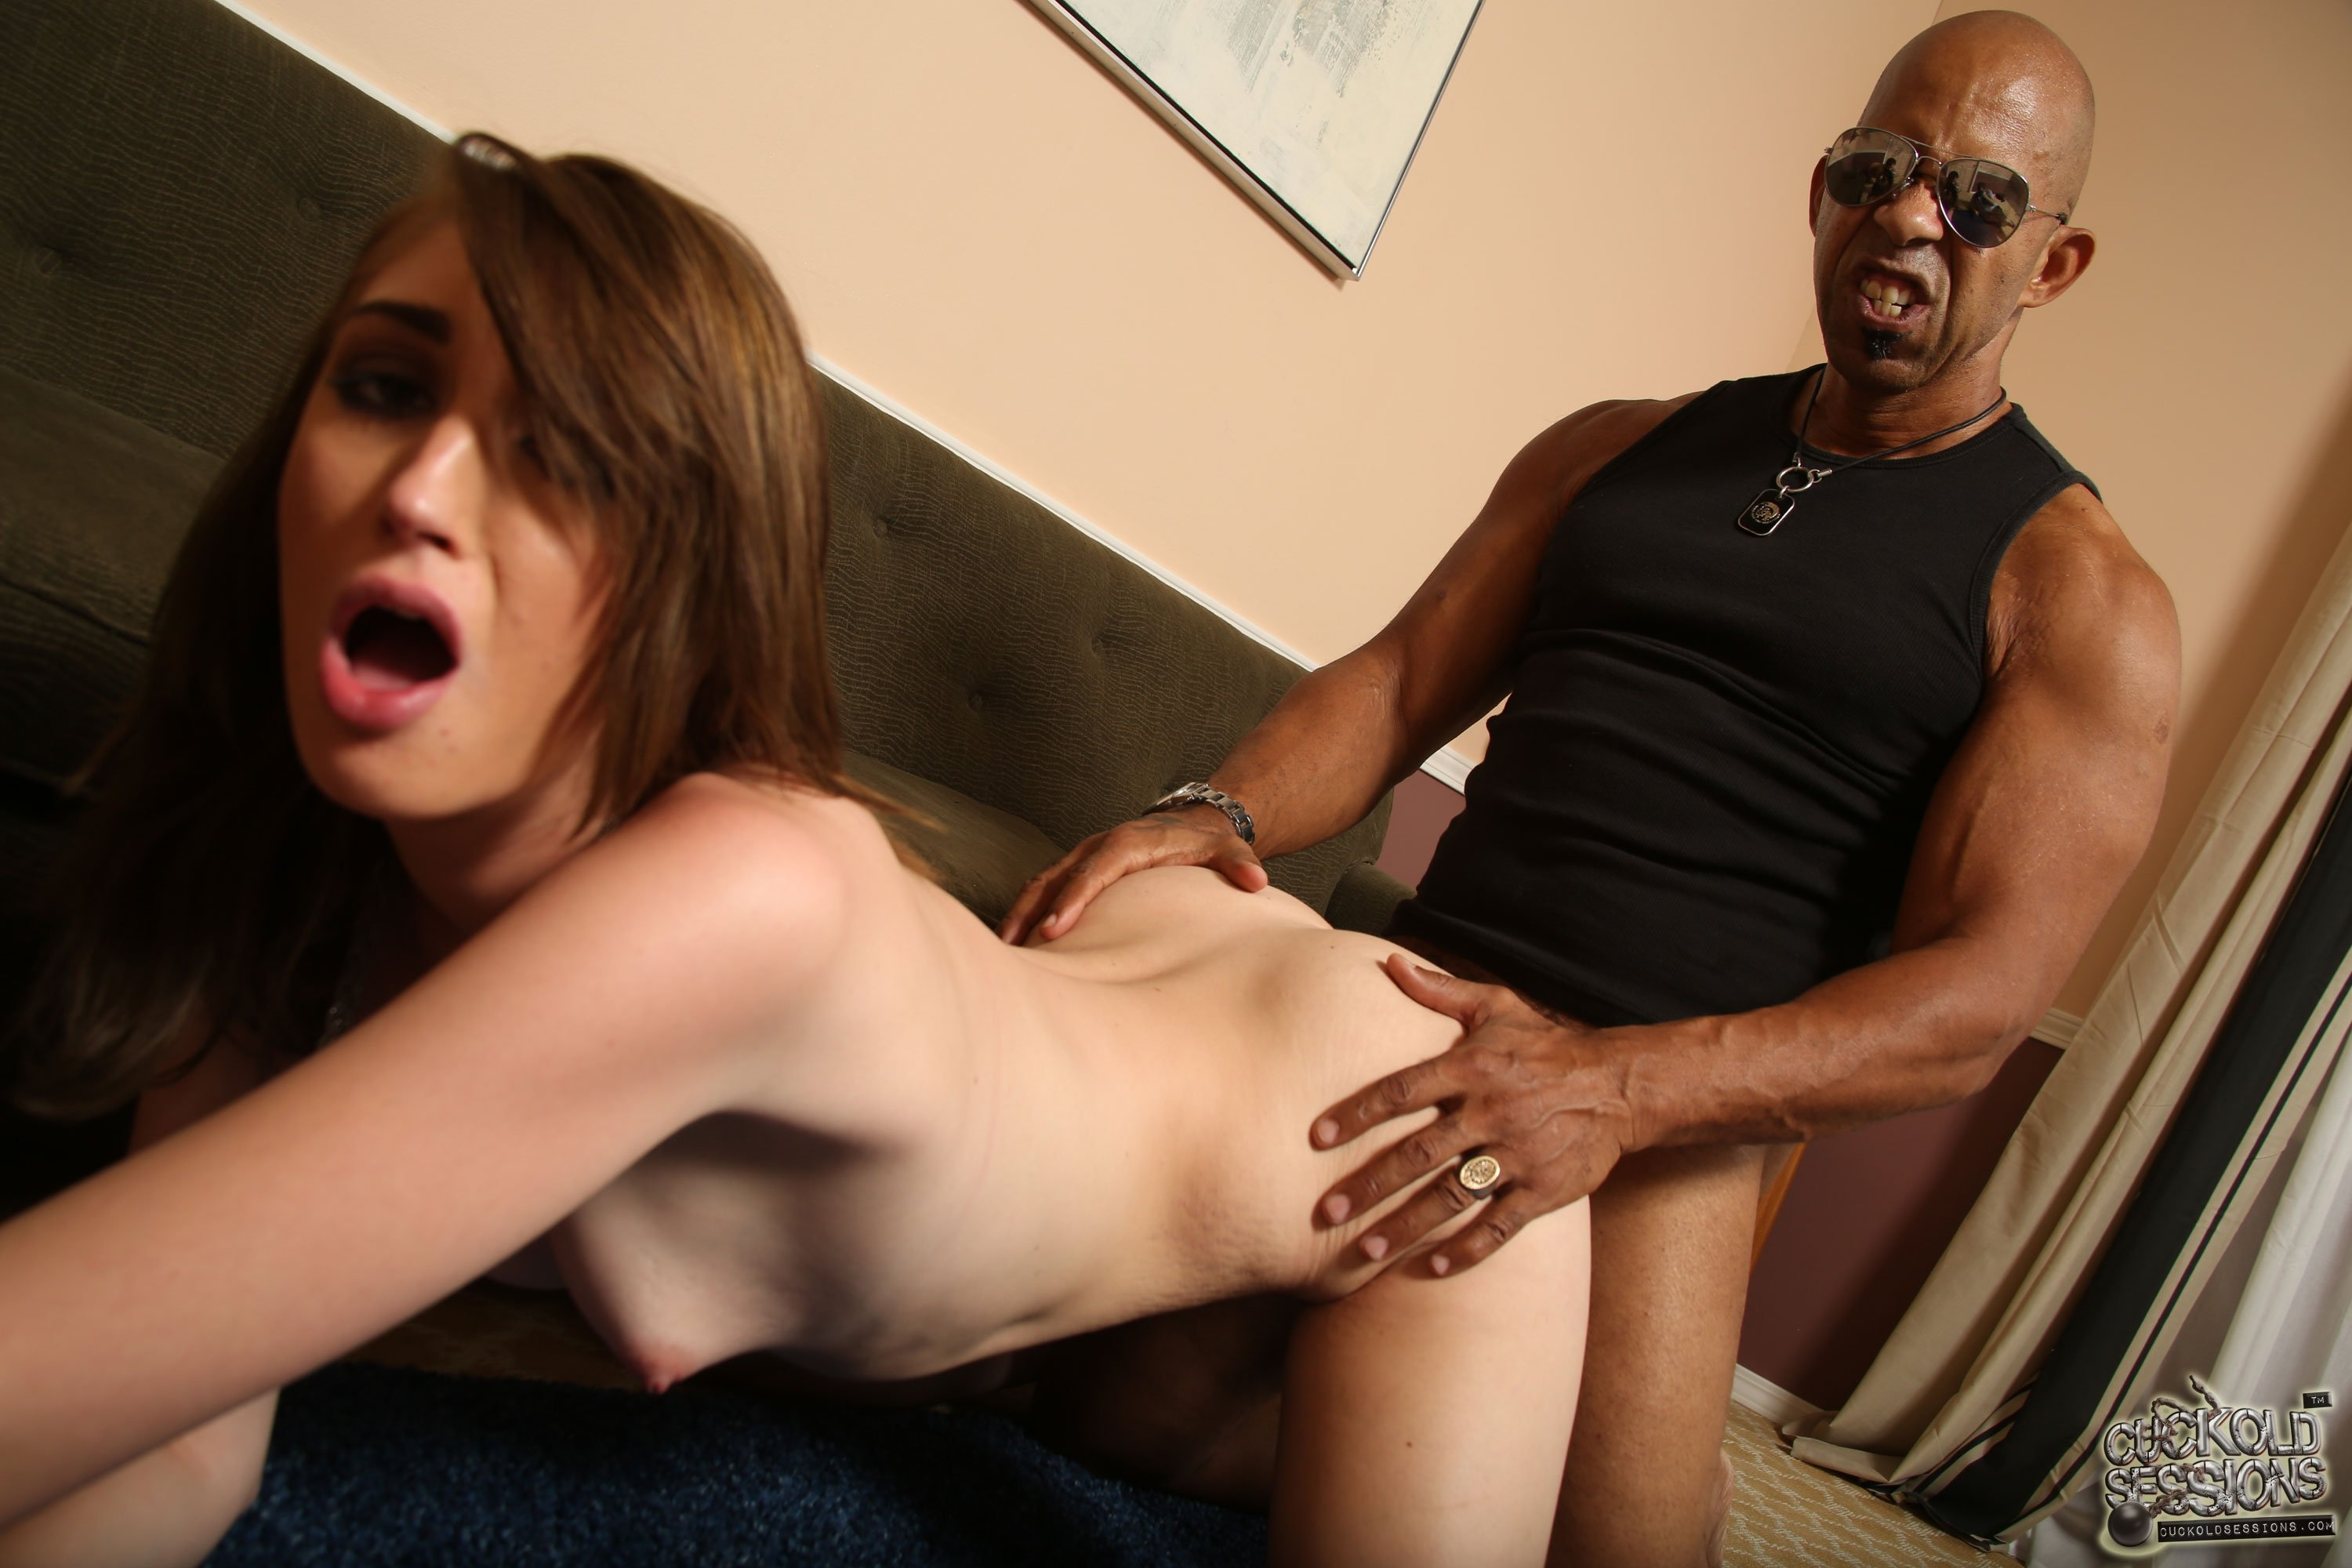 Bathed diapered girl powdered shaved stripped